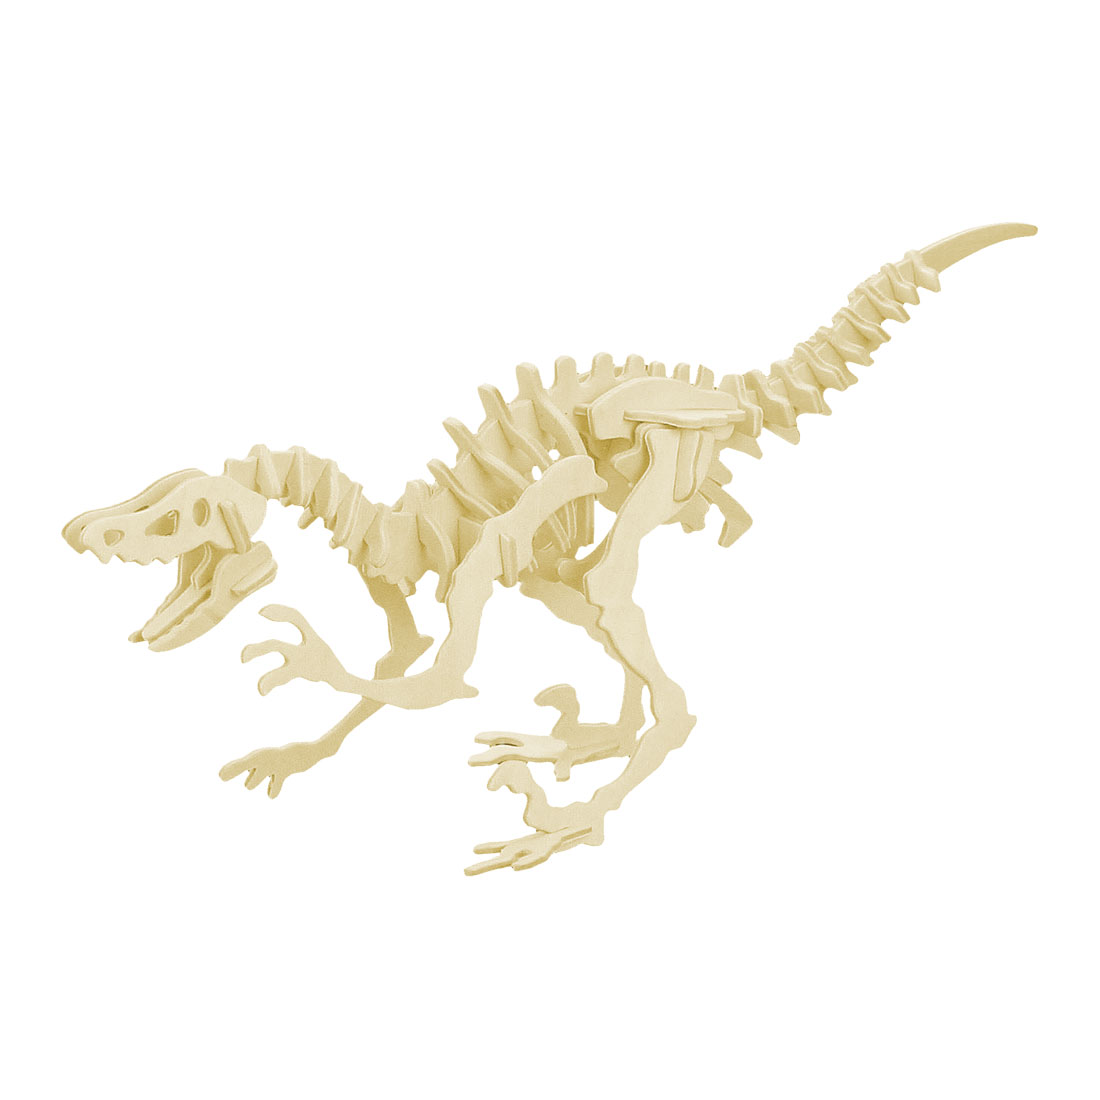 3D Woodcraft Construction Kit Wooden Dinosaur Deinonychus Model Toy